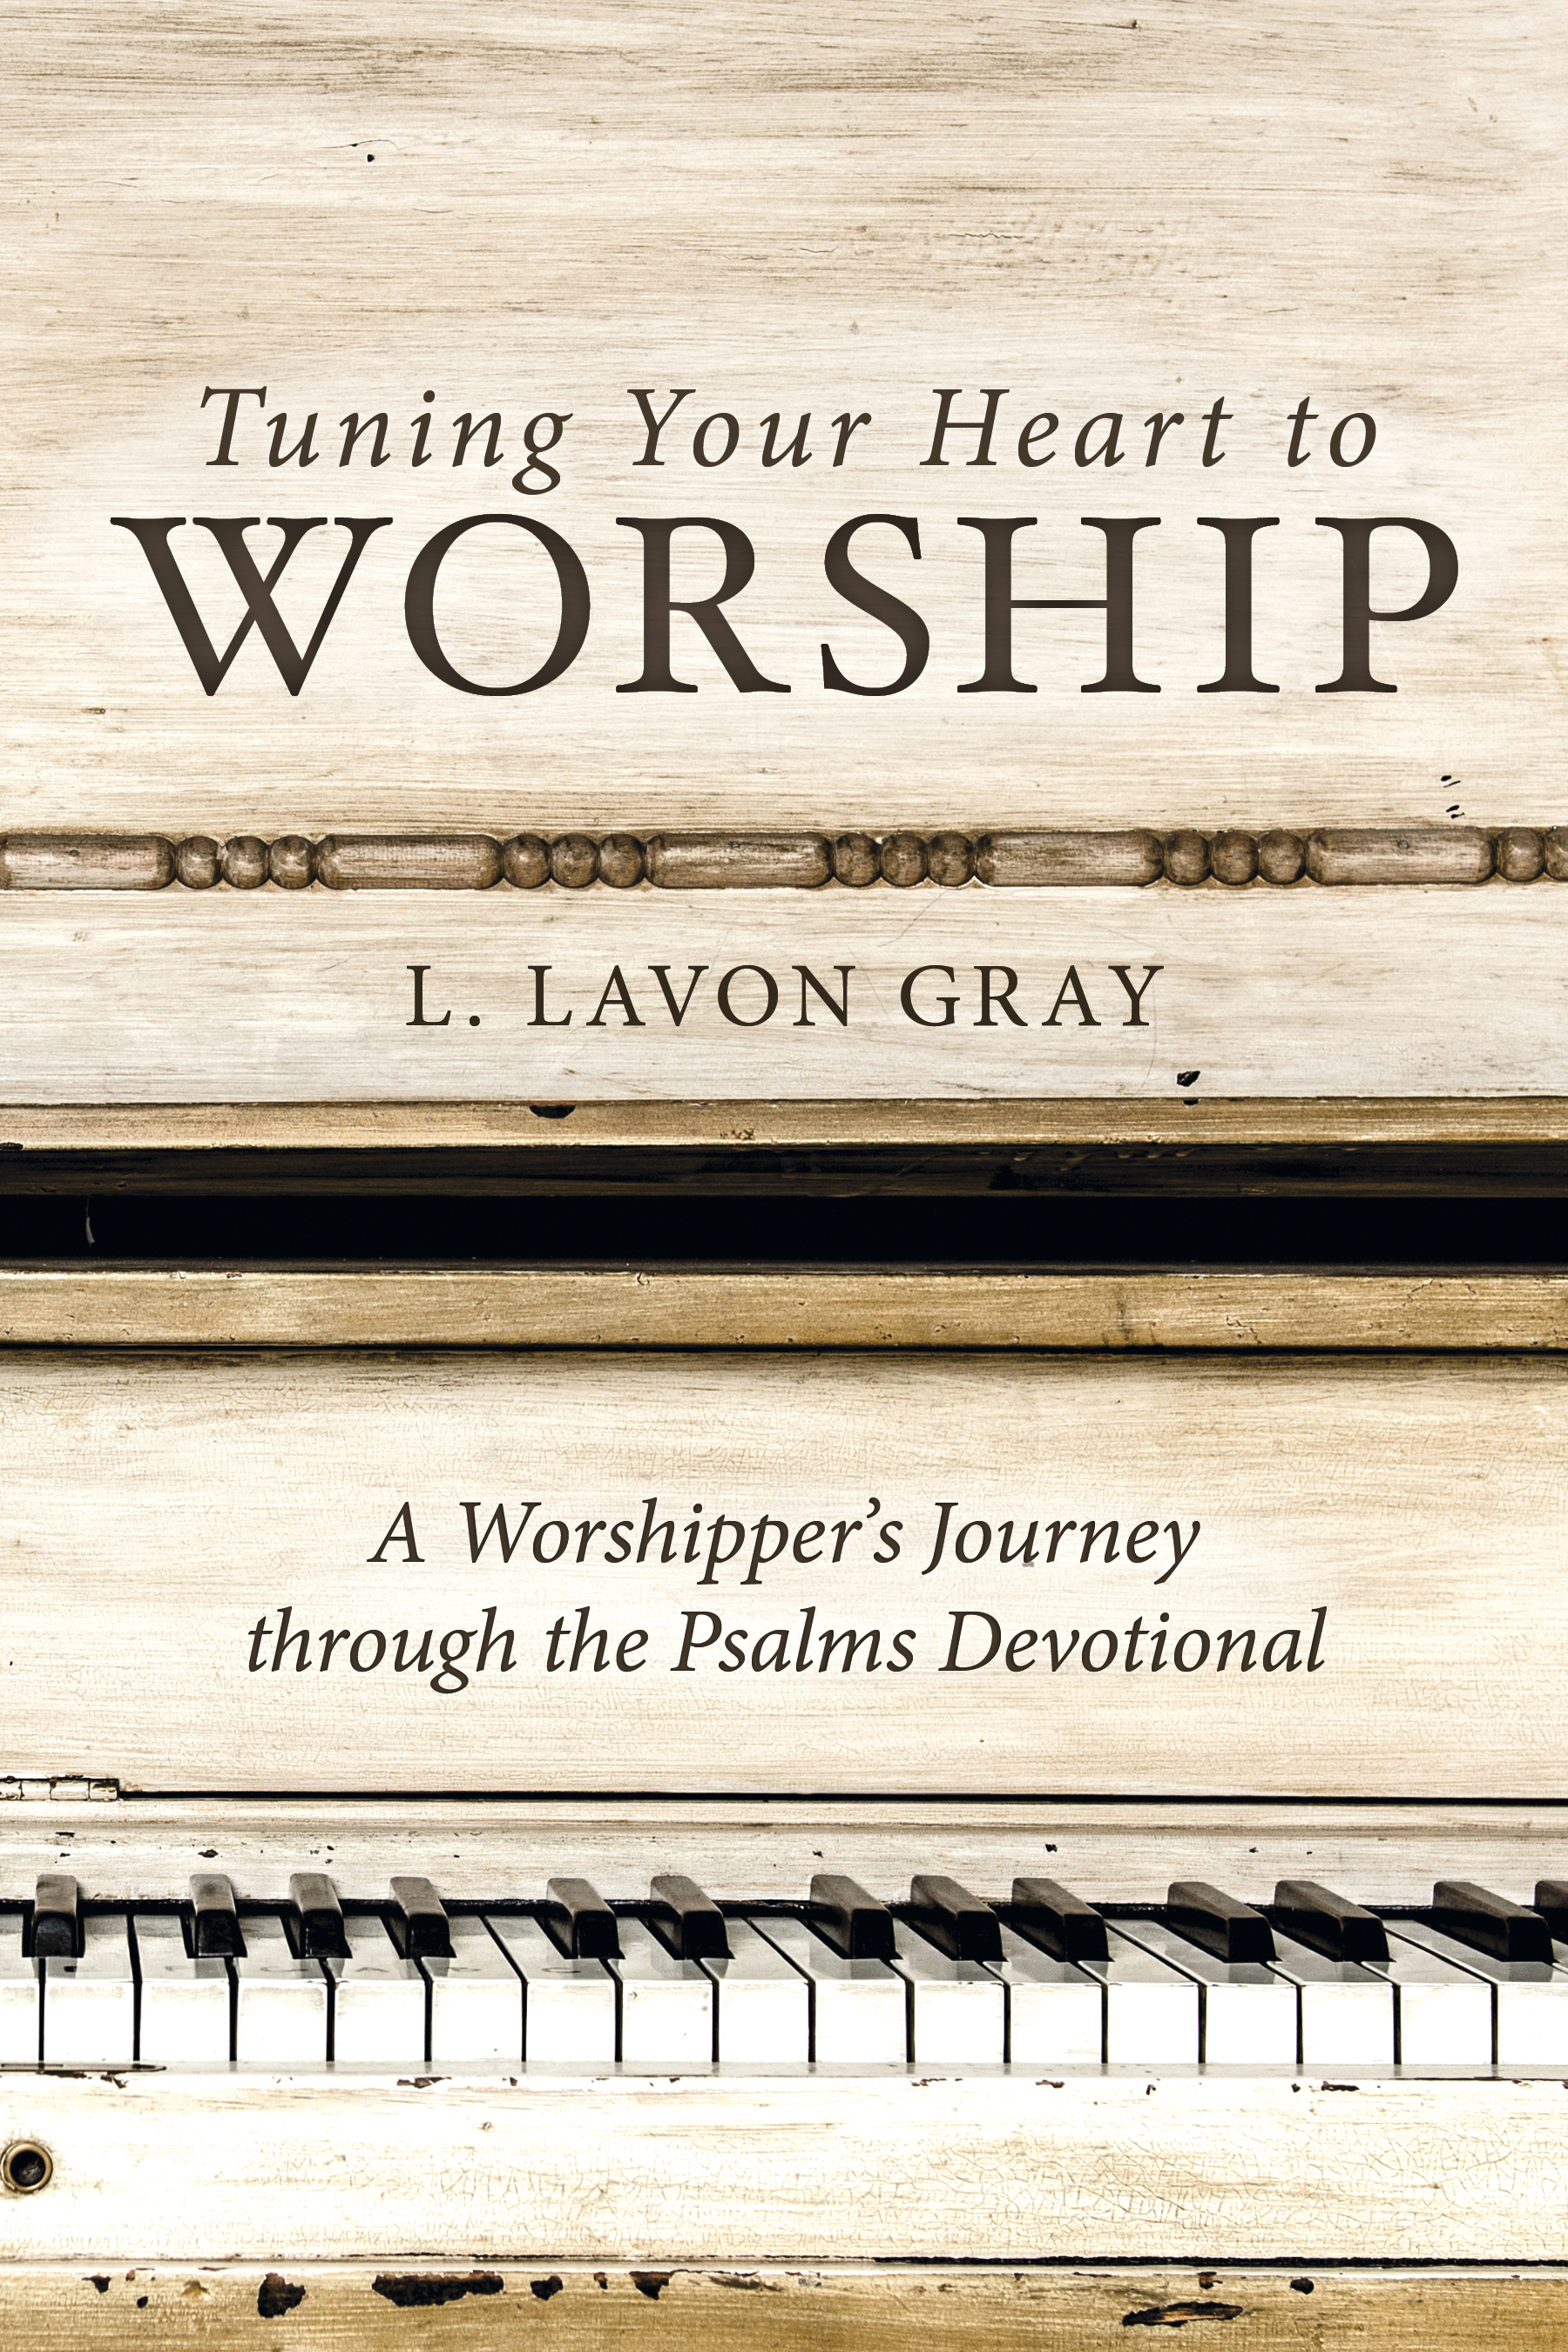 Tuning Your Heart to Worship